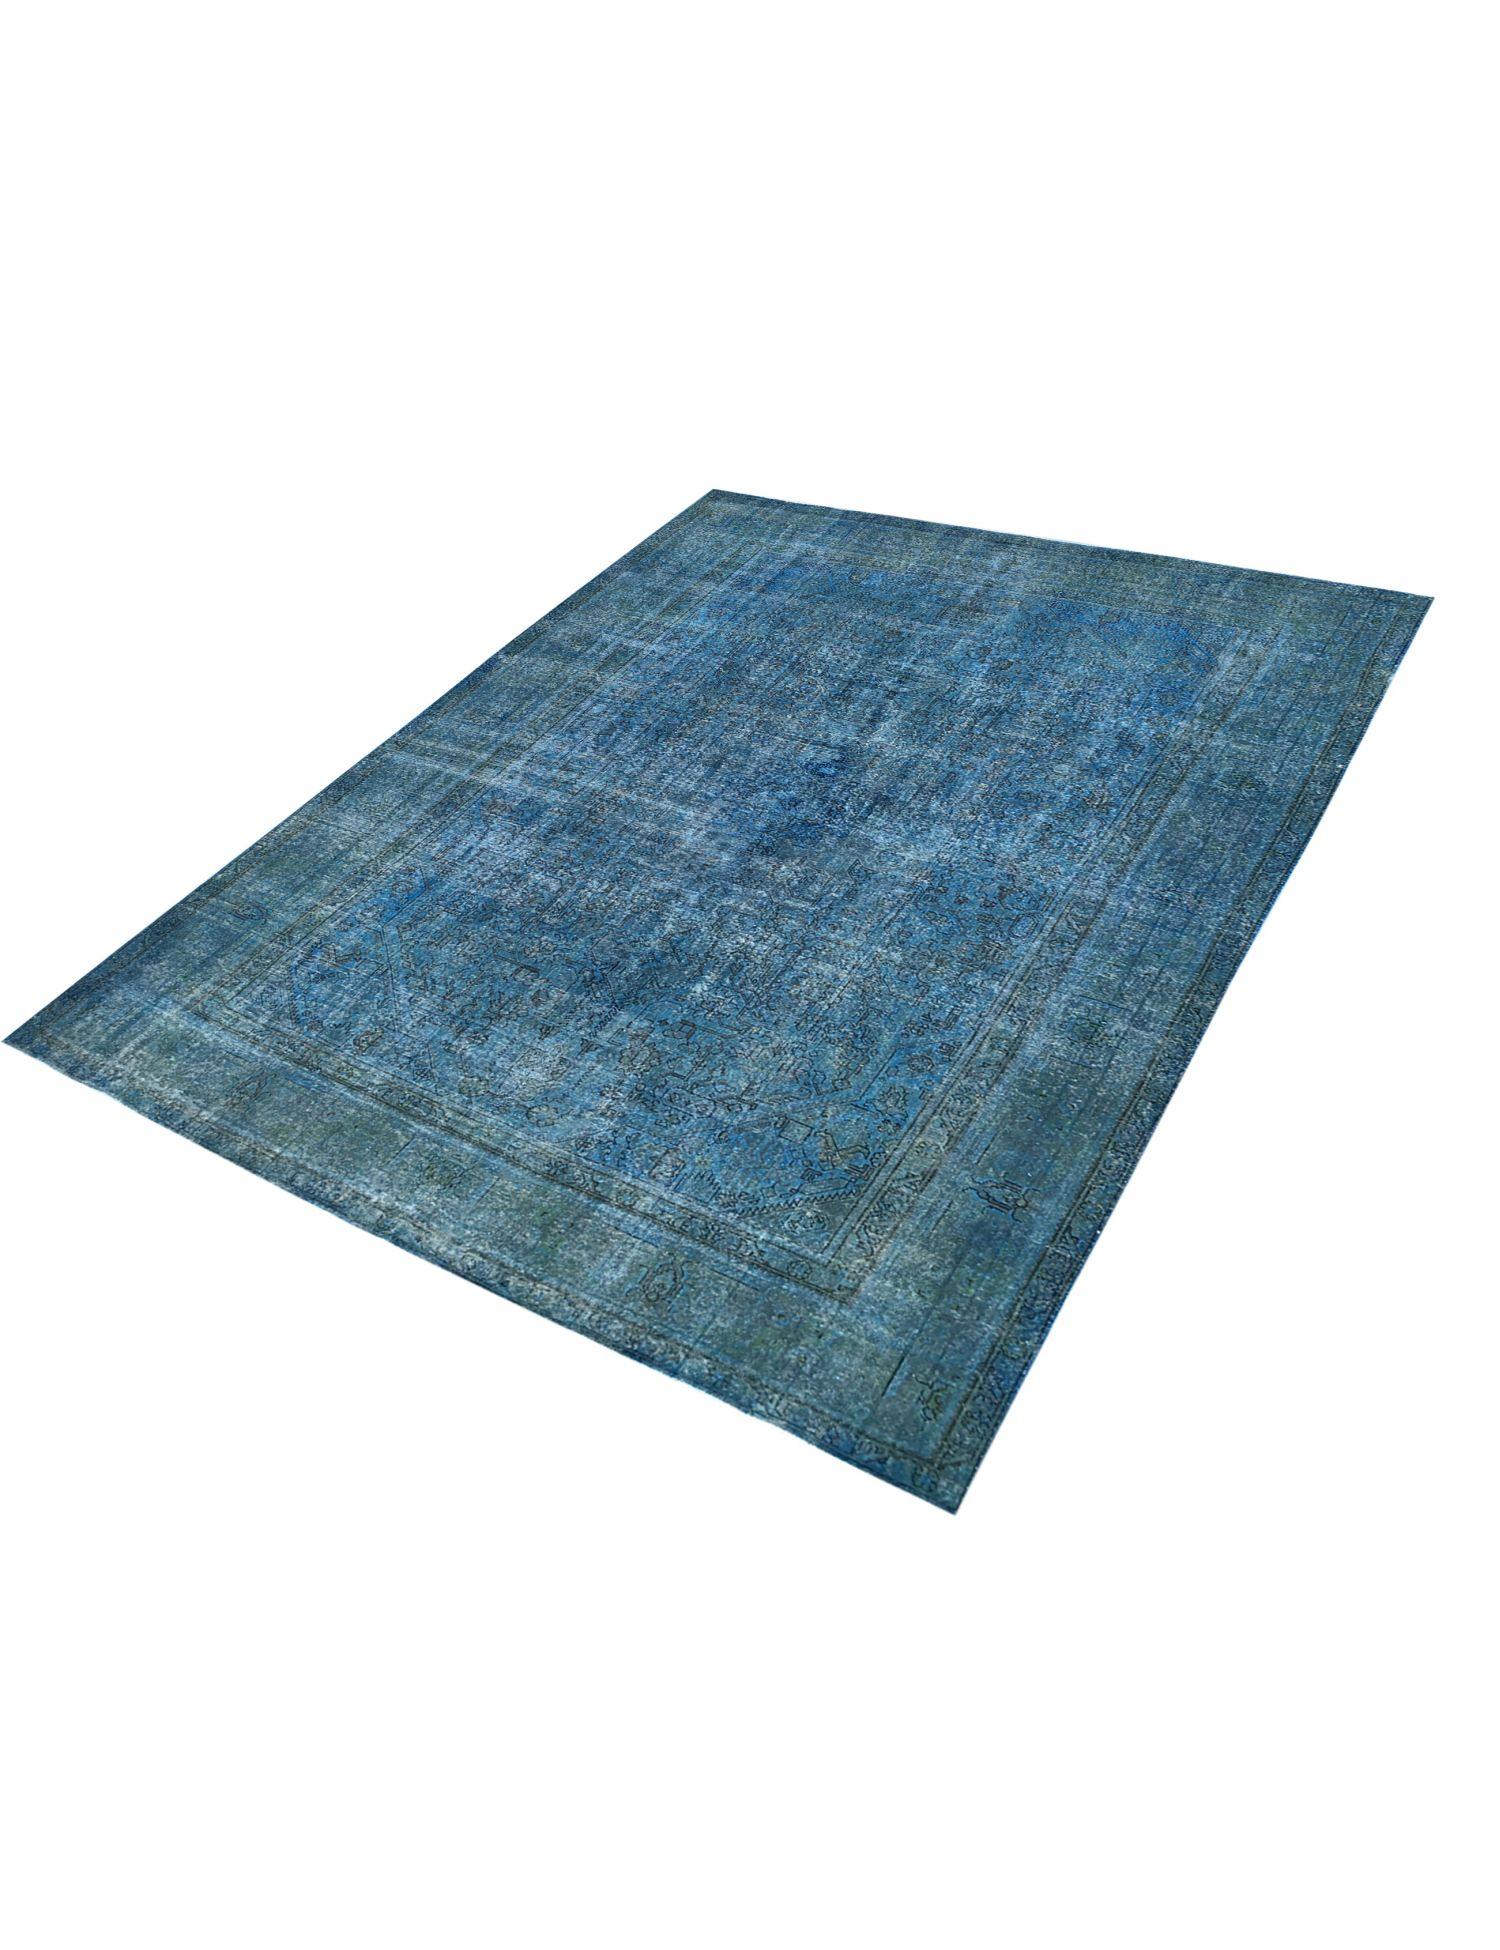 Vintage Carpet  blue <br/>382 x 289 cm